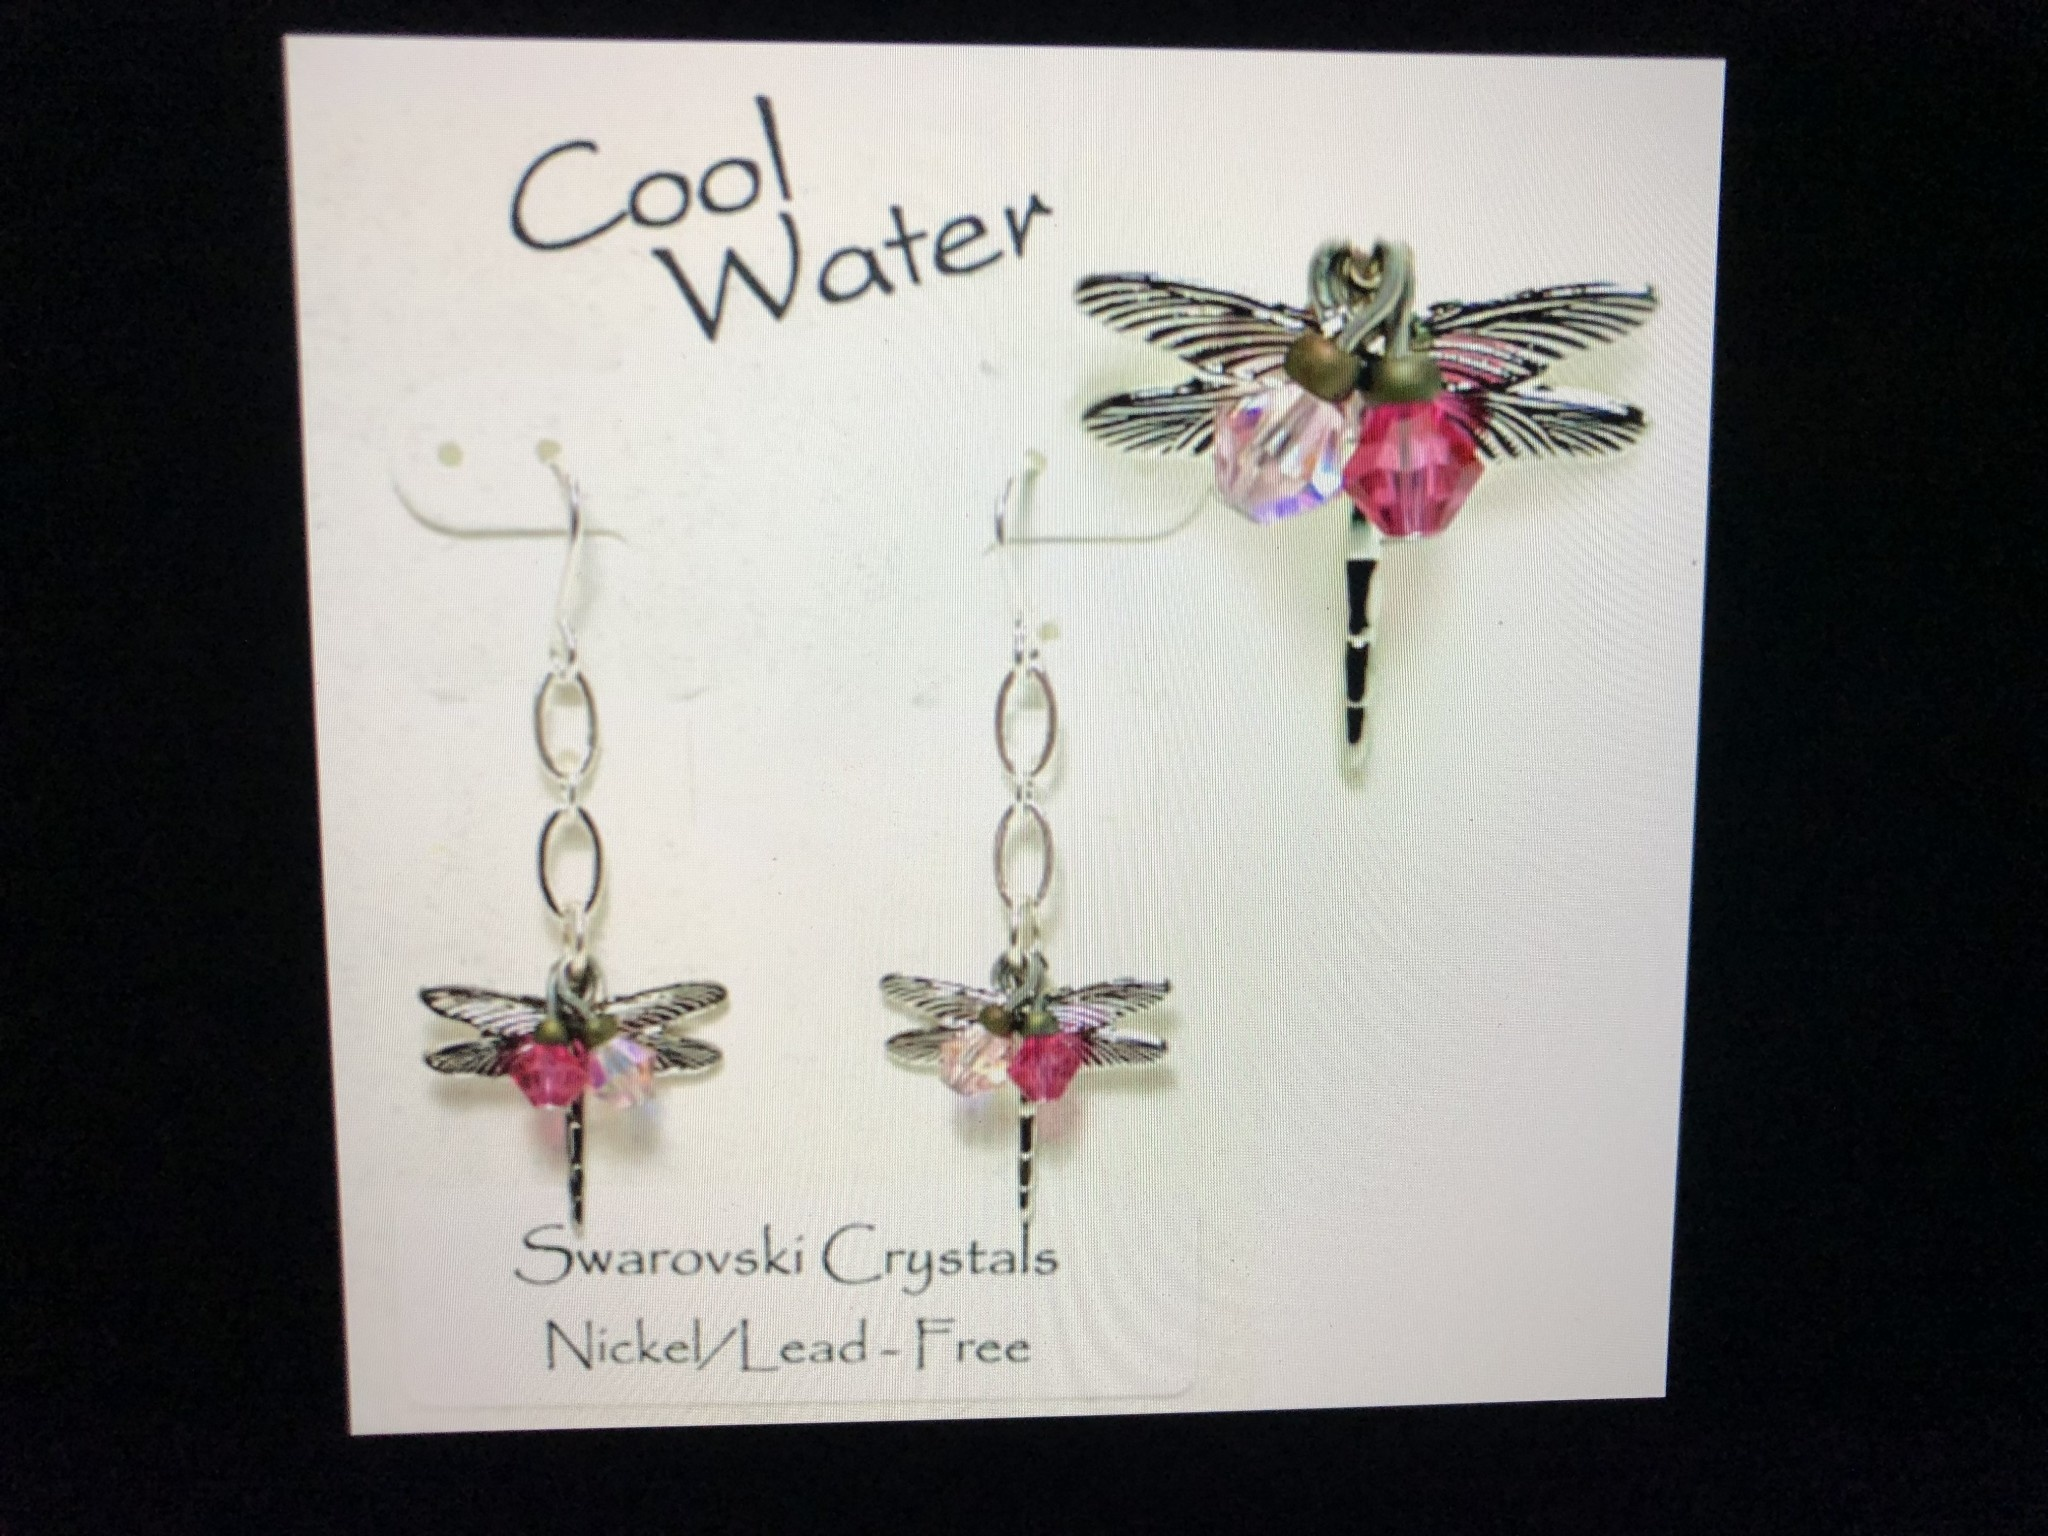 cool water jewelry EW318-124 Watermelon Rose-Dragonfly & Crystals